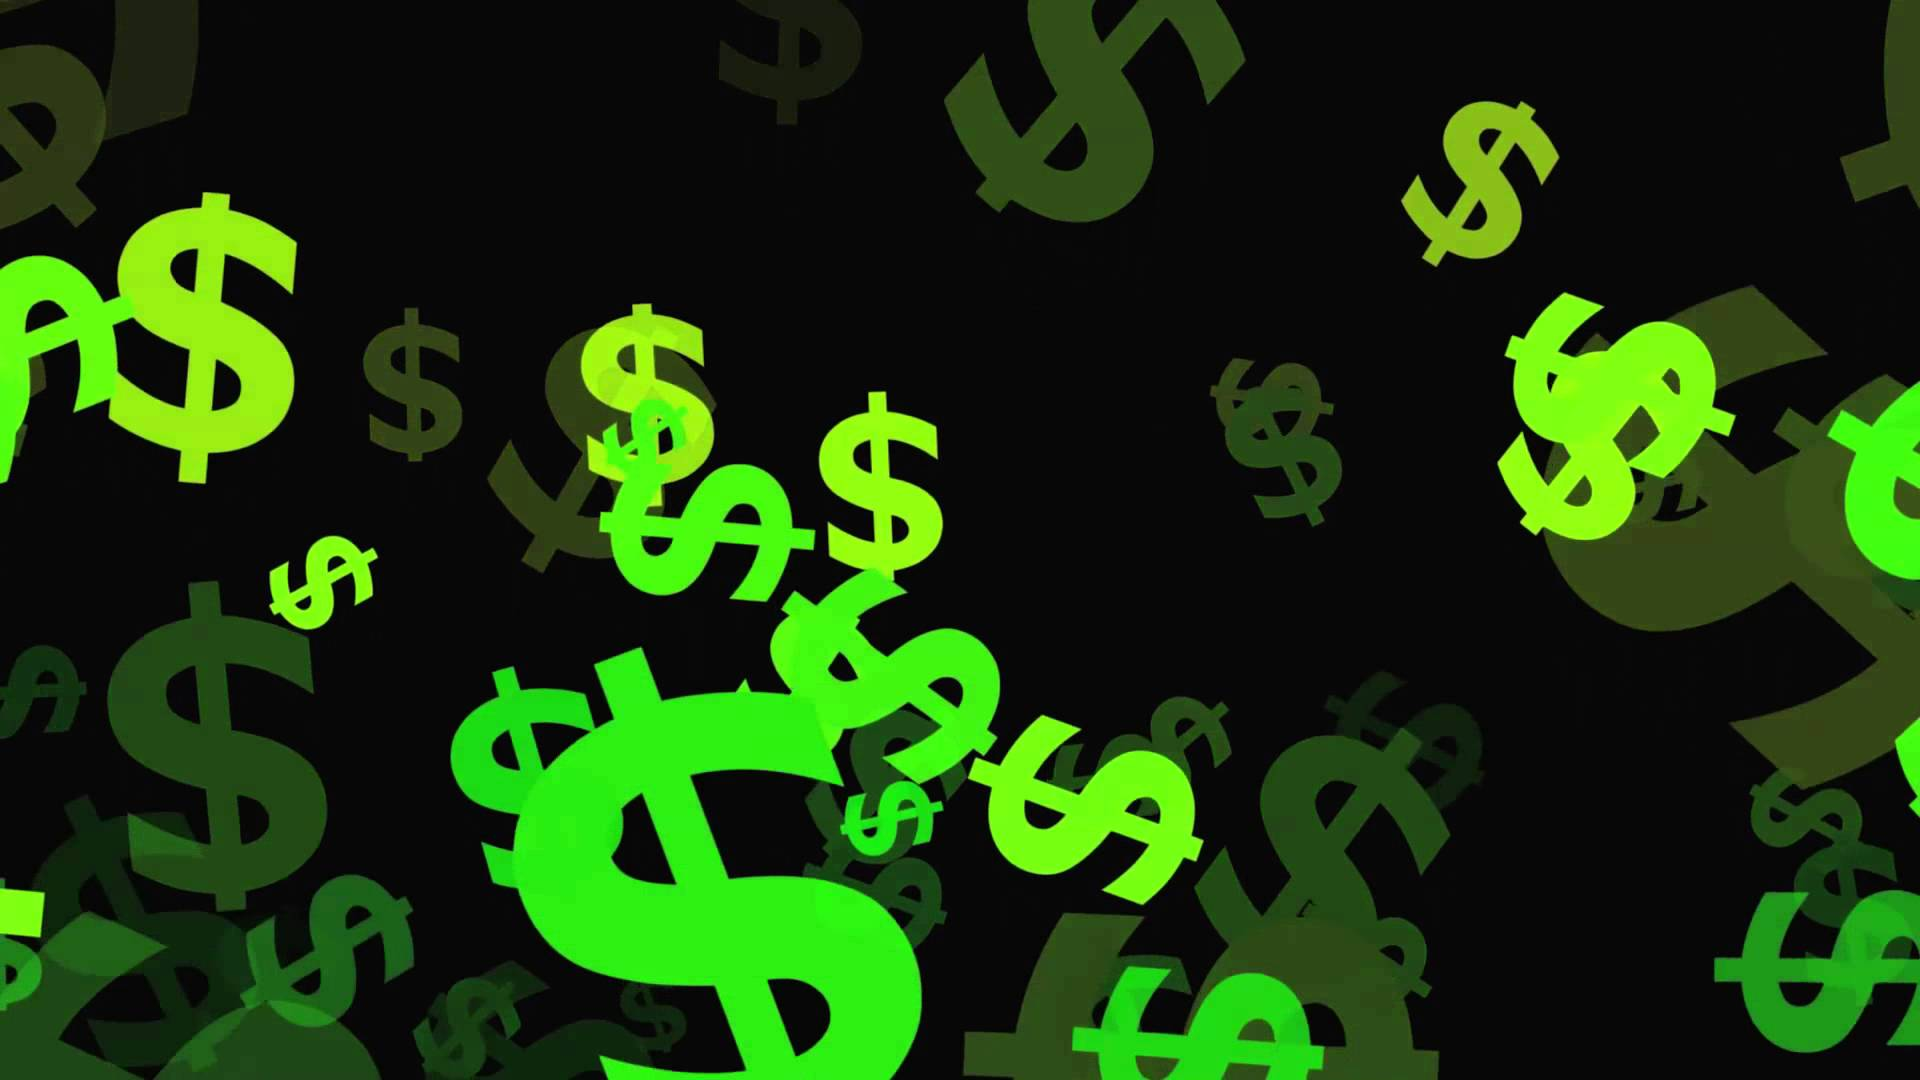 for dollar signs background displaying 18 images for dollar signs 1920x1080